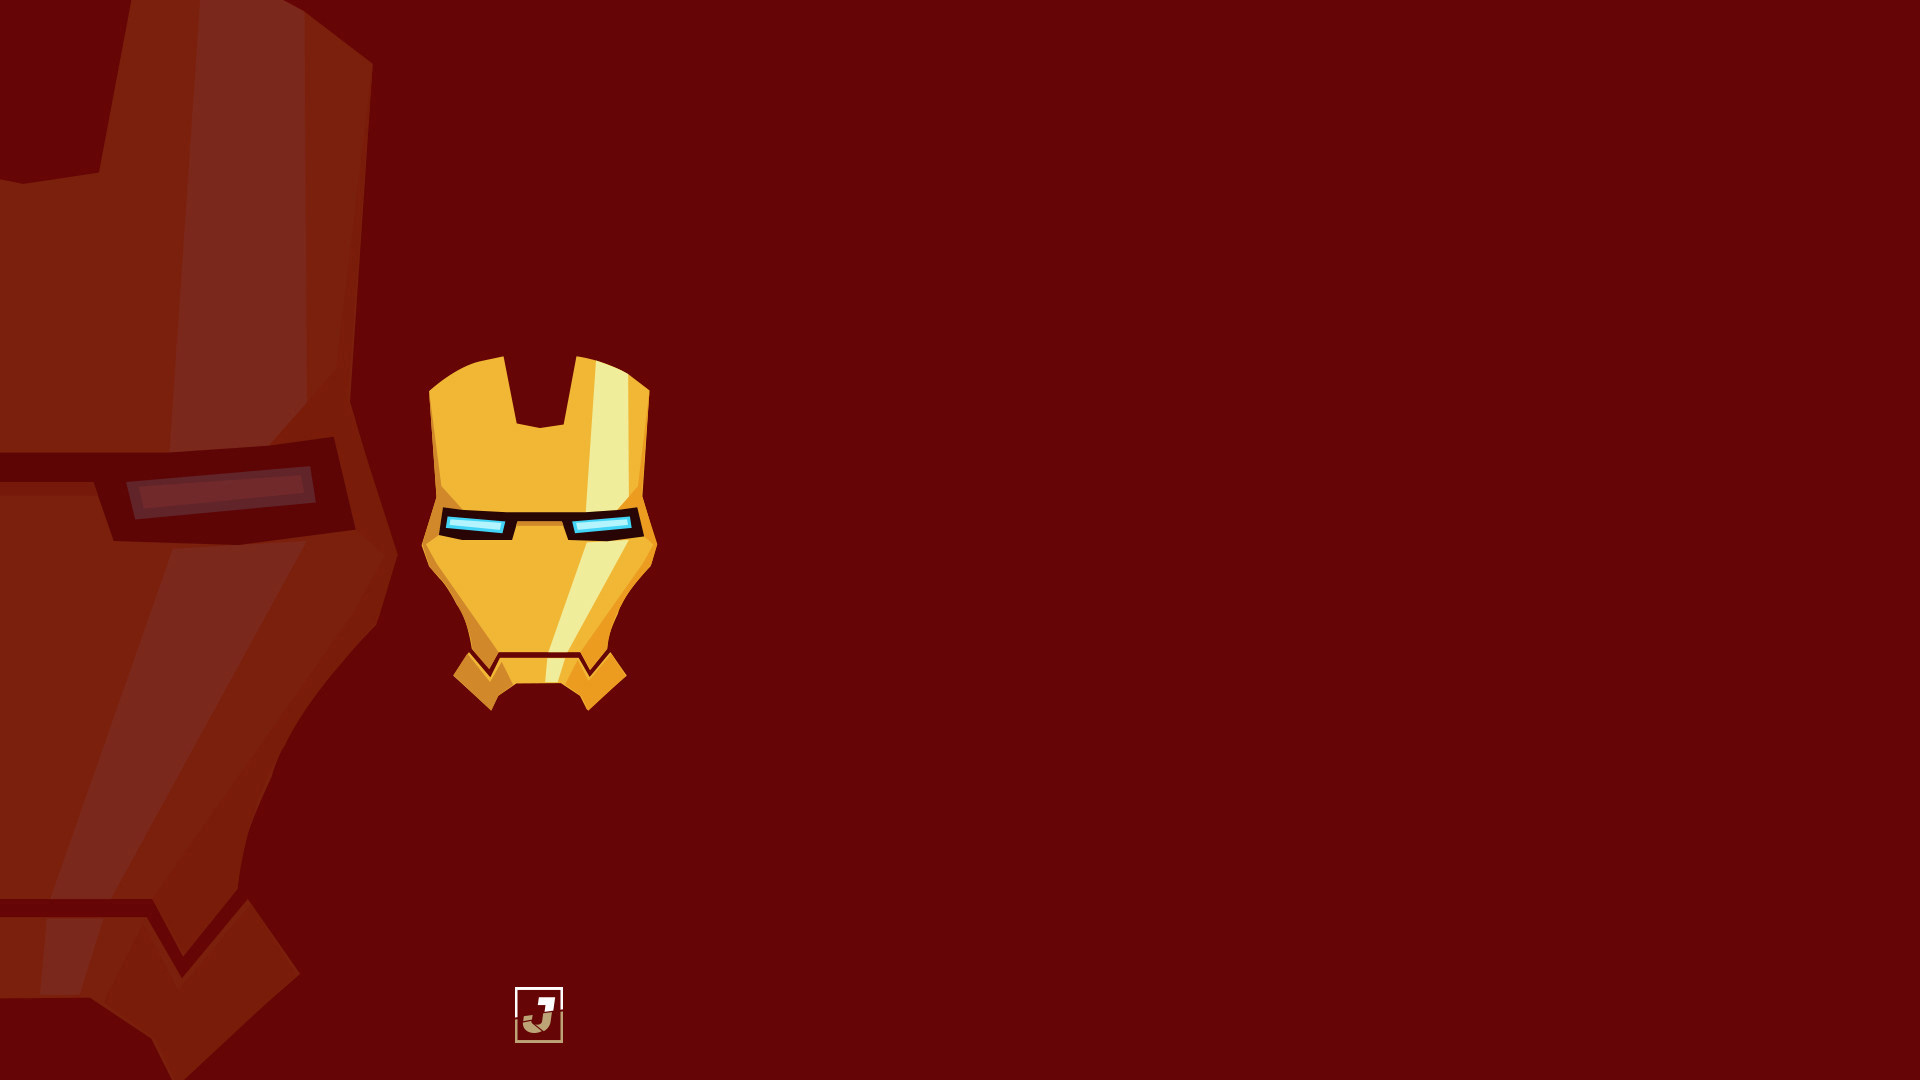 Iron Man Mask Minimalism Hd Superheroes 4k Wallpapers Images